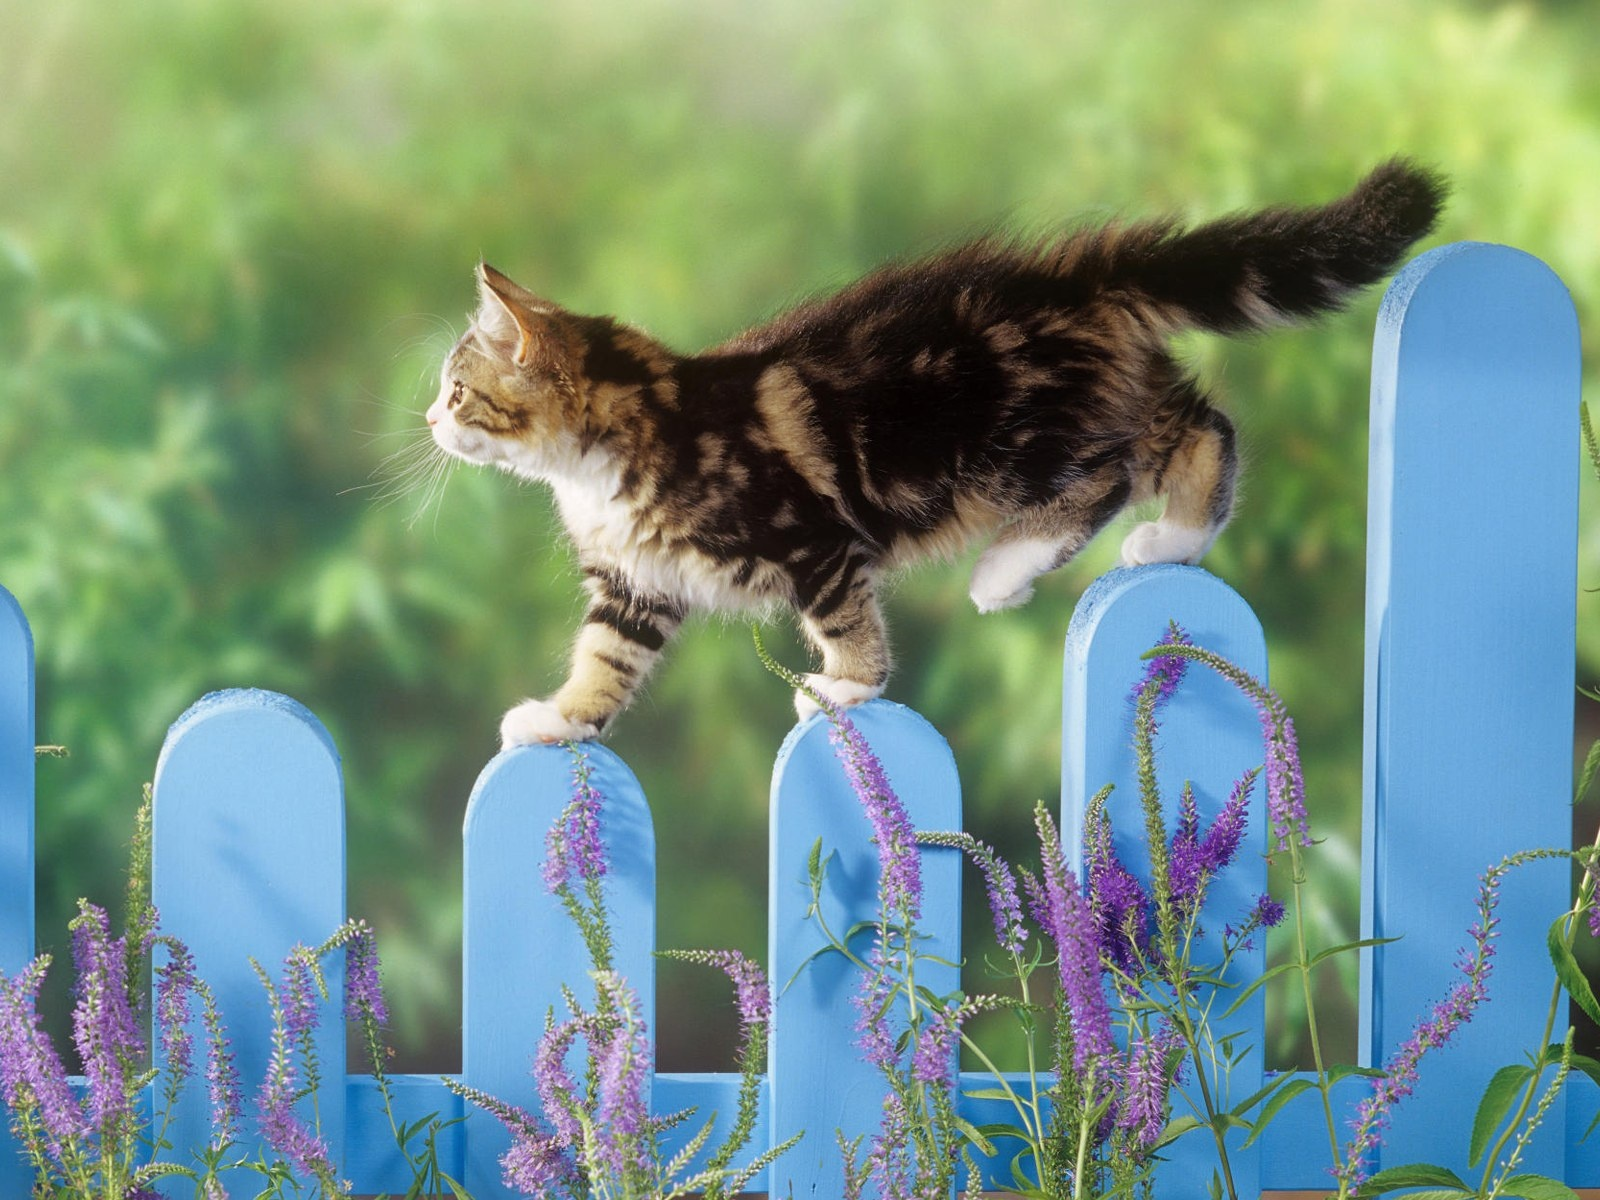 click to free download the wallpaper--Cute Animals Image, Kitty Walking on Blue Fences, Slow and Steady, Enjoying the Nature Scene 1600X1200 free wallpaper download